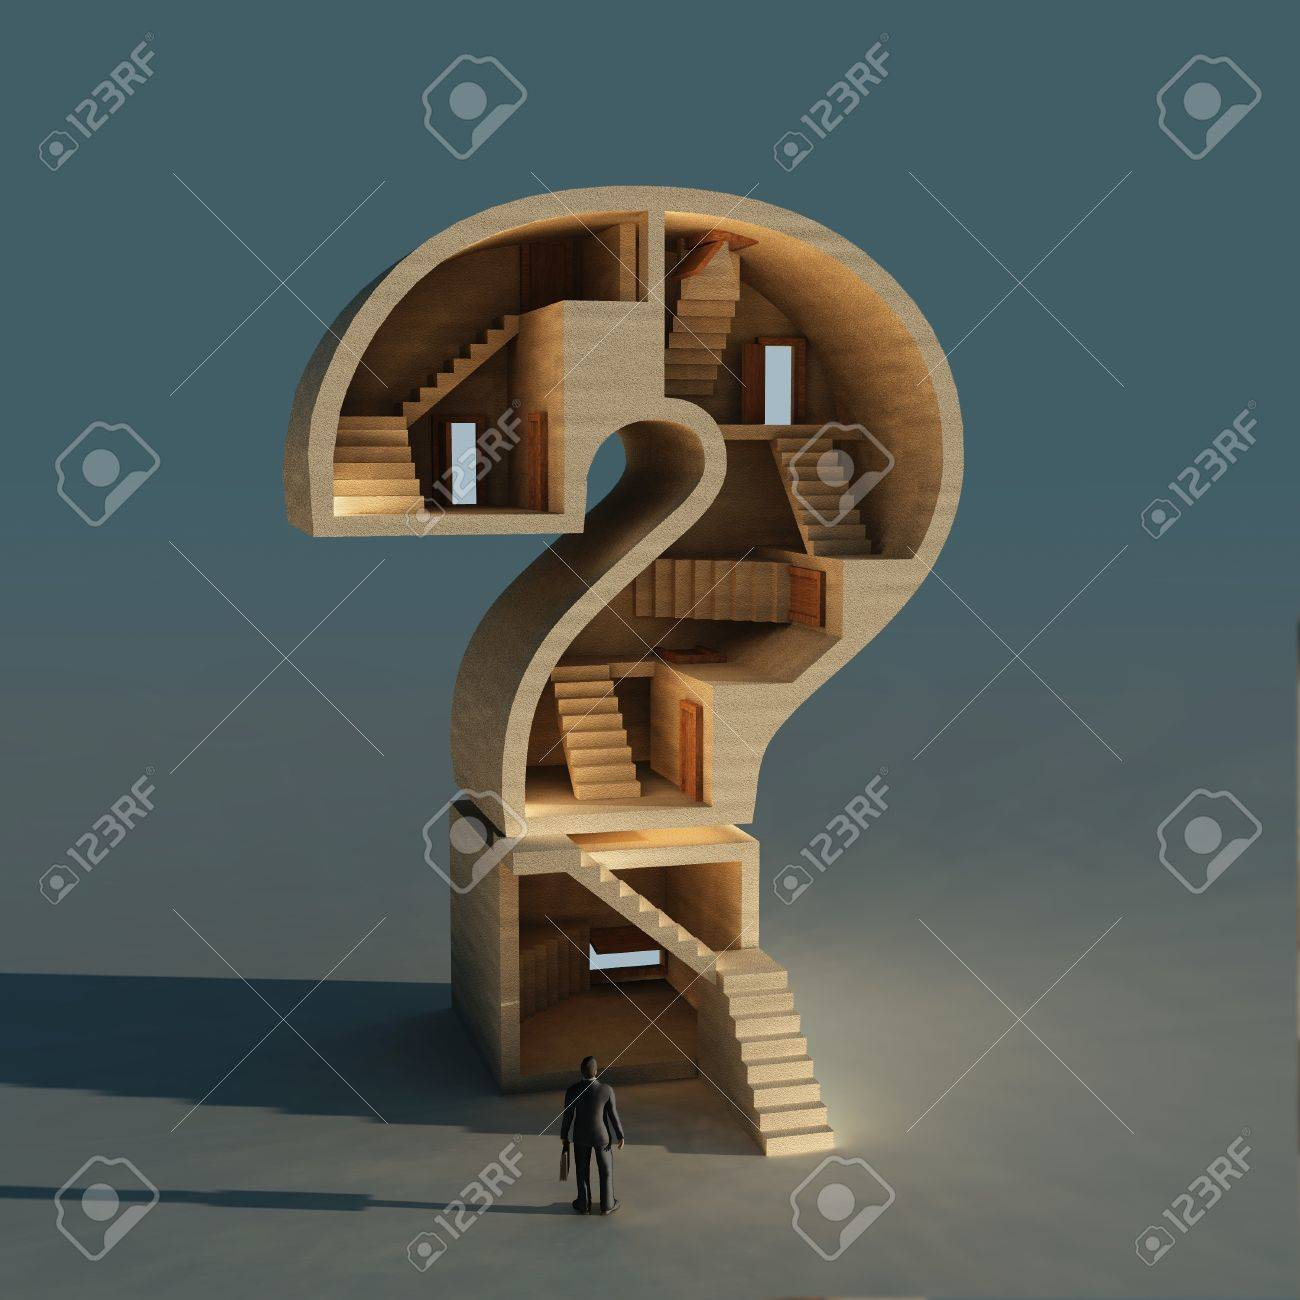 complicated business question Stock Photo - 10628112